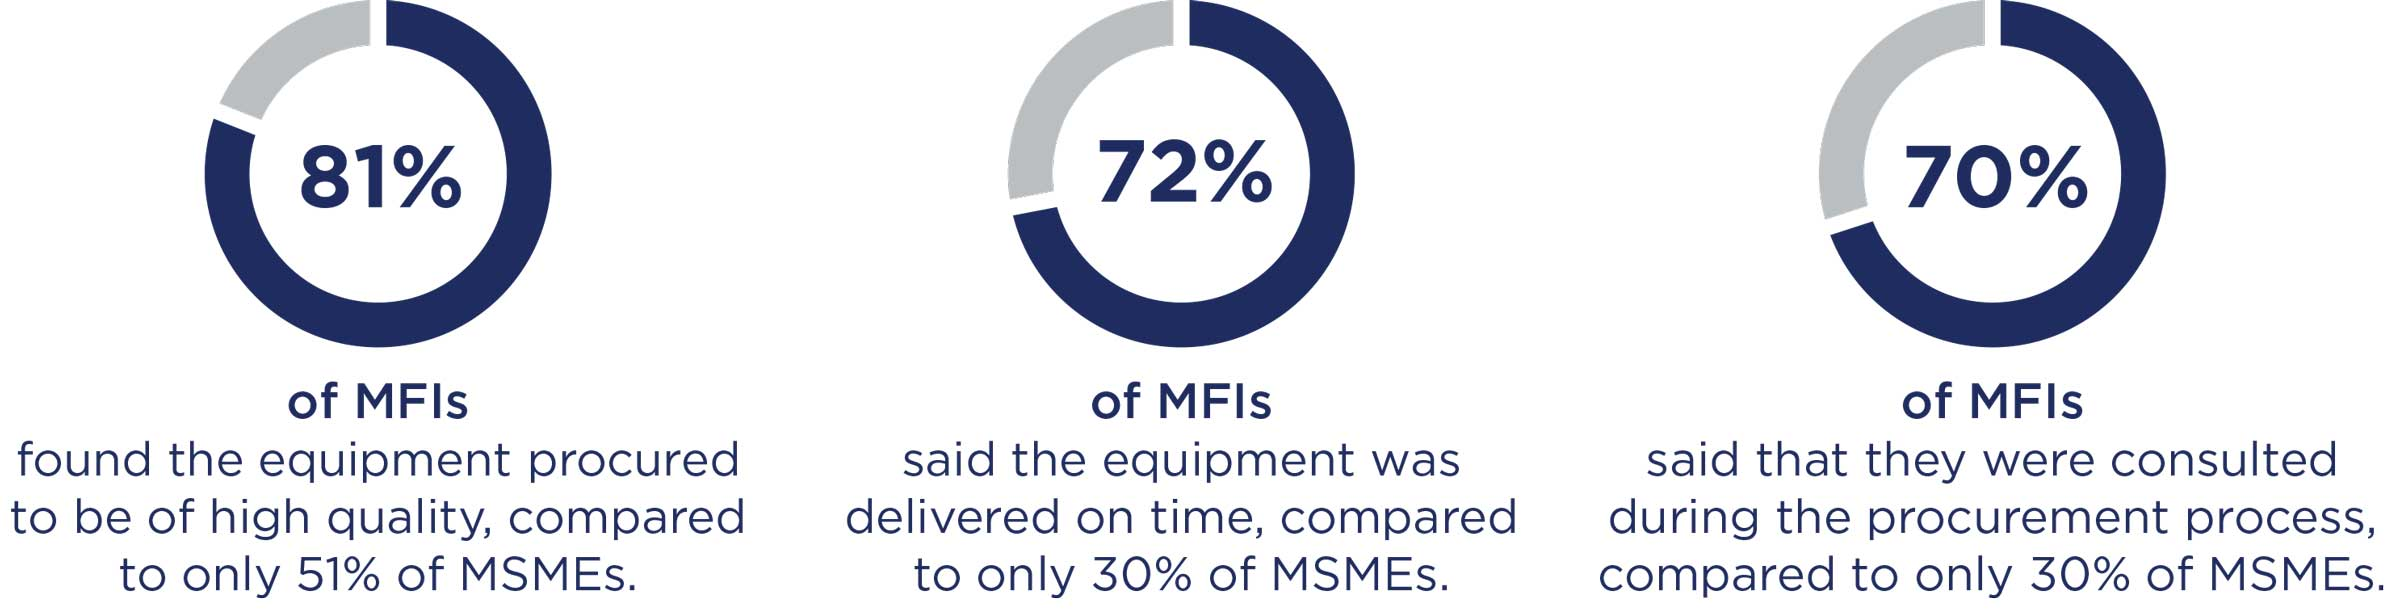 Graphic of results comparing MFIs to MSMEs.